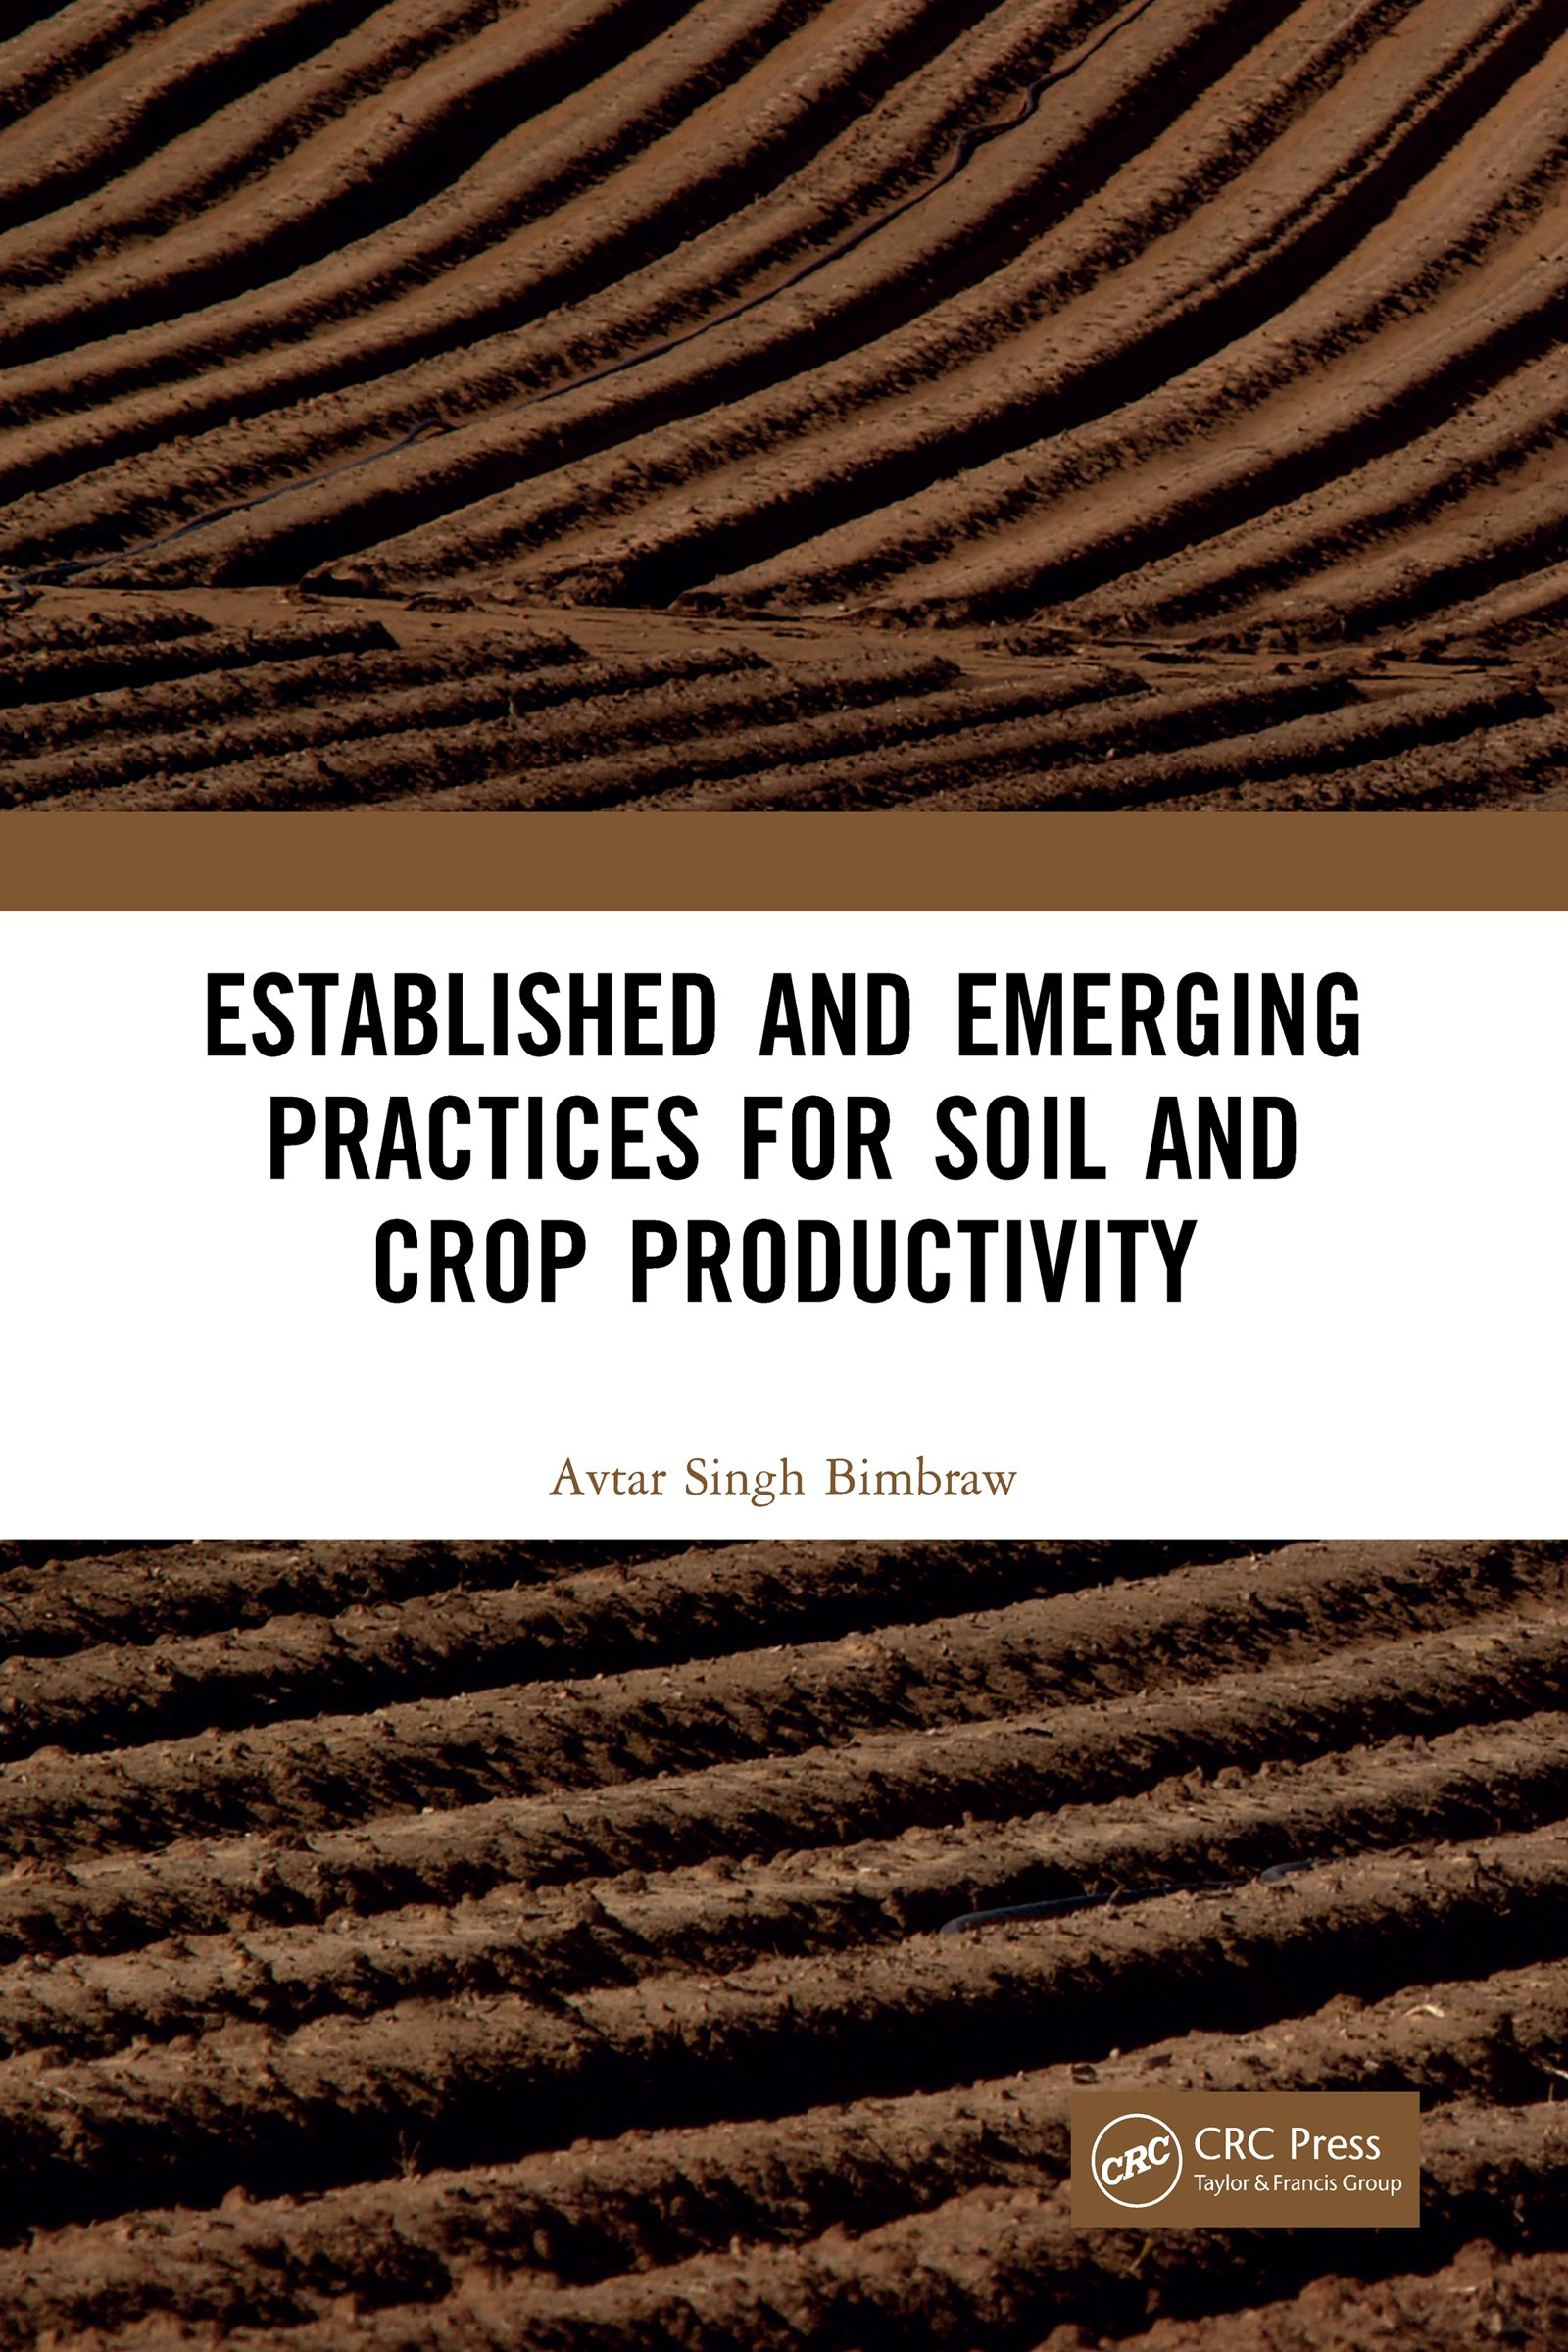 Established and Emerging Practices for Soil and Crop Productivity